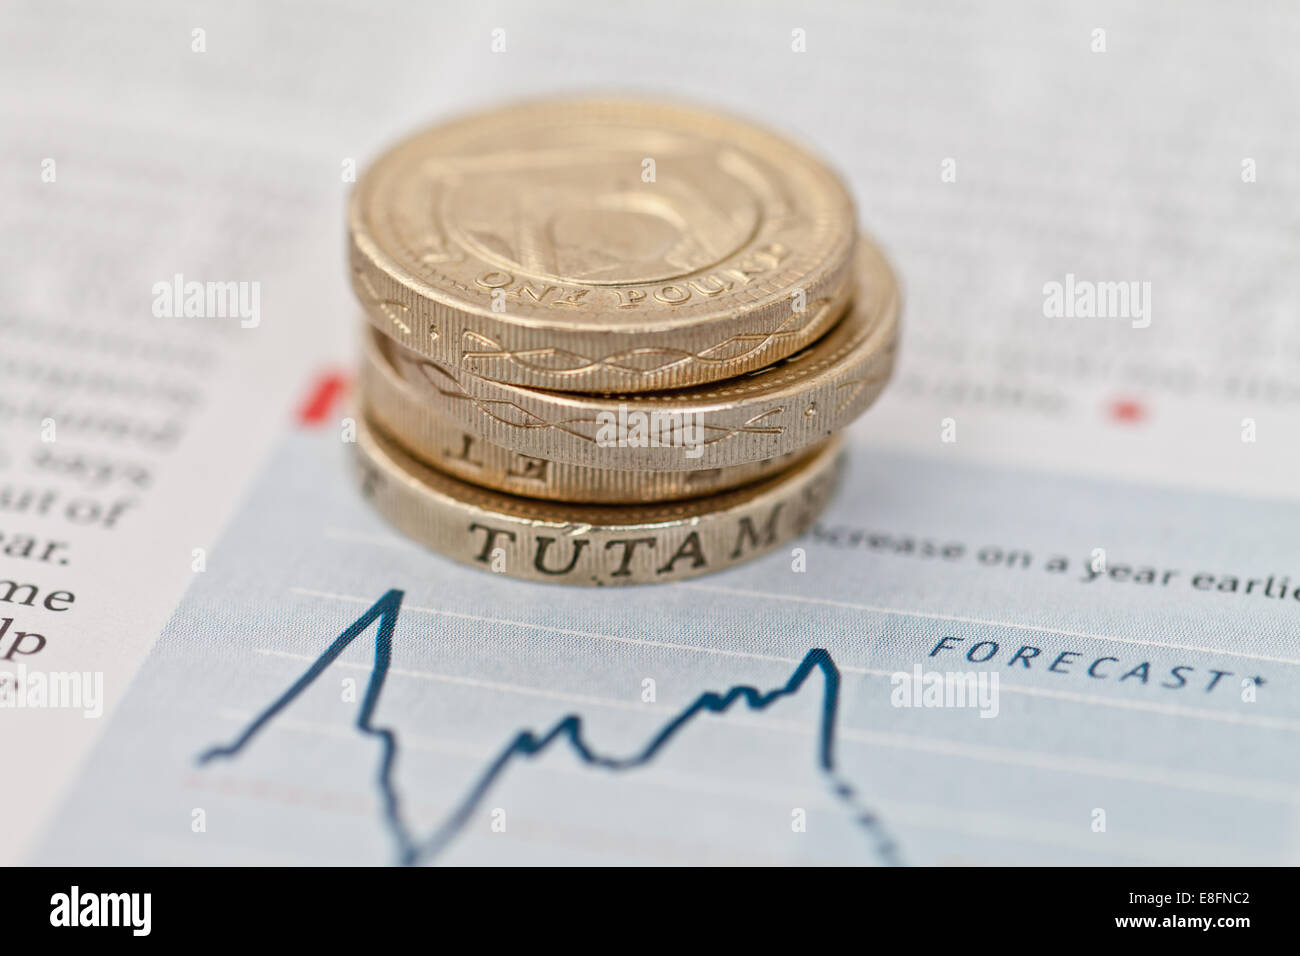 Stack of Pound Coins On Financial Forecast - Stock Image